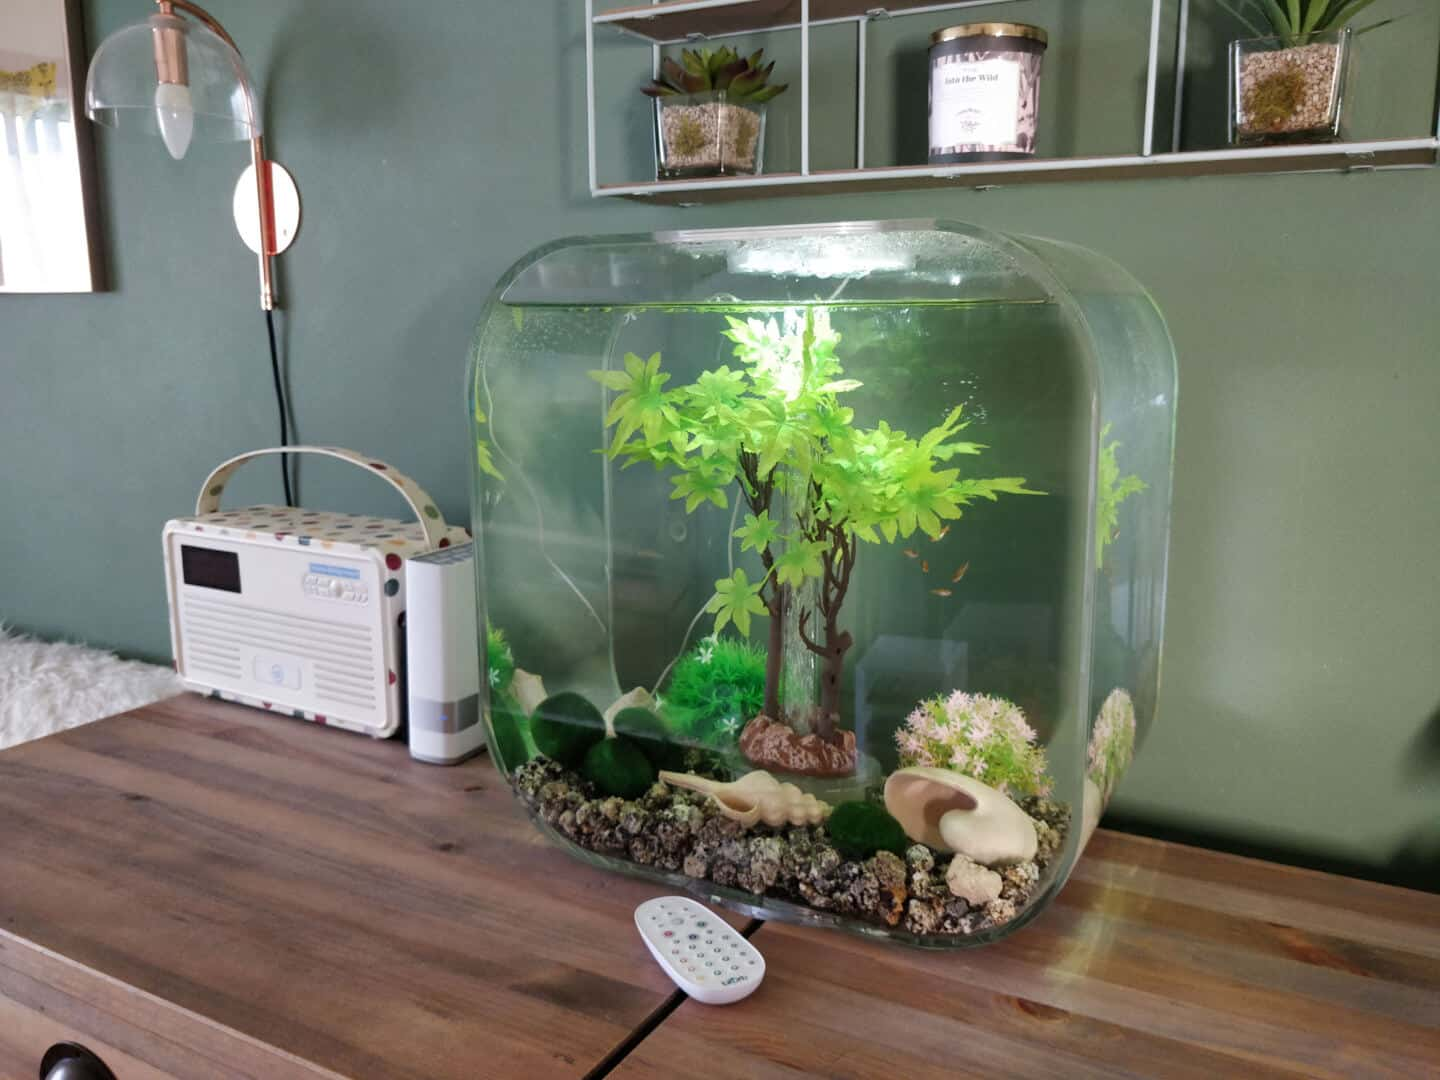 30l biOrb Life fish tank on a sideboard in a living room with green walls behind